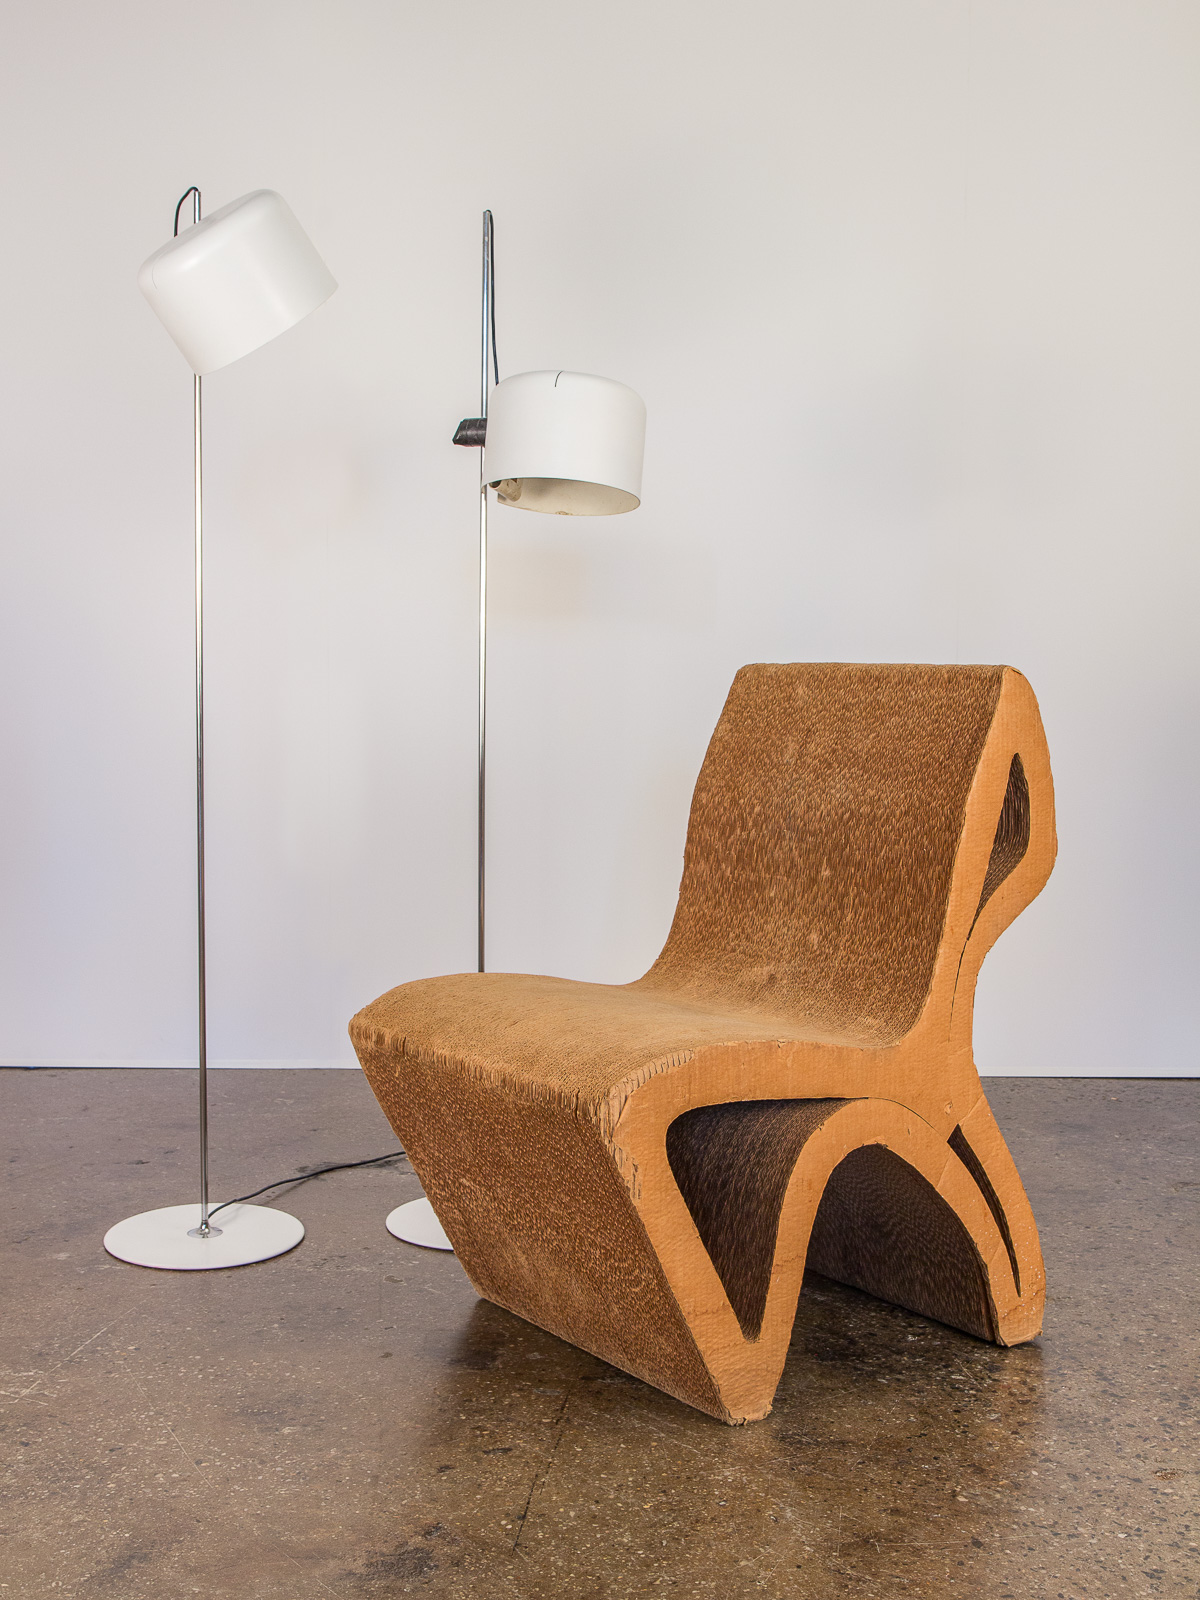 frank gehry cardboard chairs blue wing back chair vintage corrugated oam open air modern 6 jpg